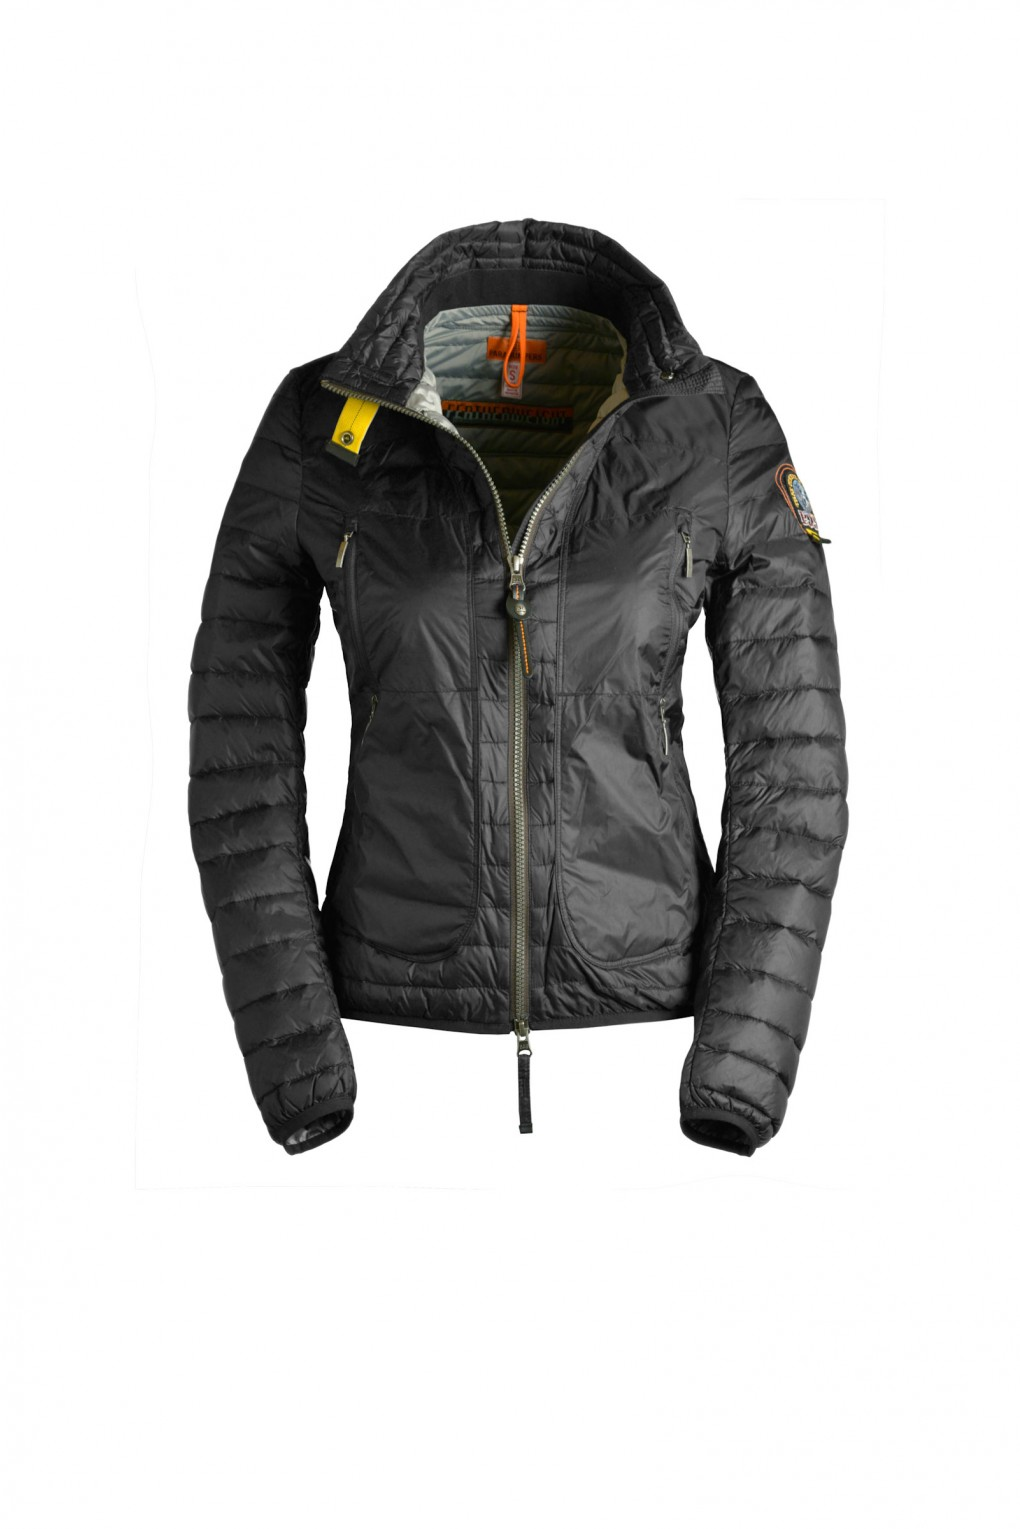 parajumpers GLORIA woman outerwear Asphalt